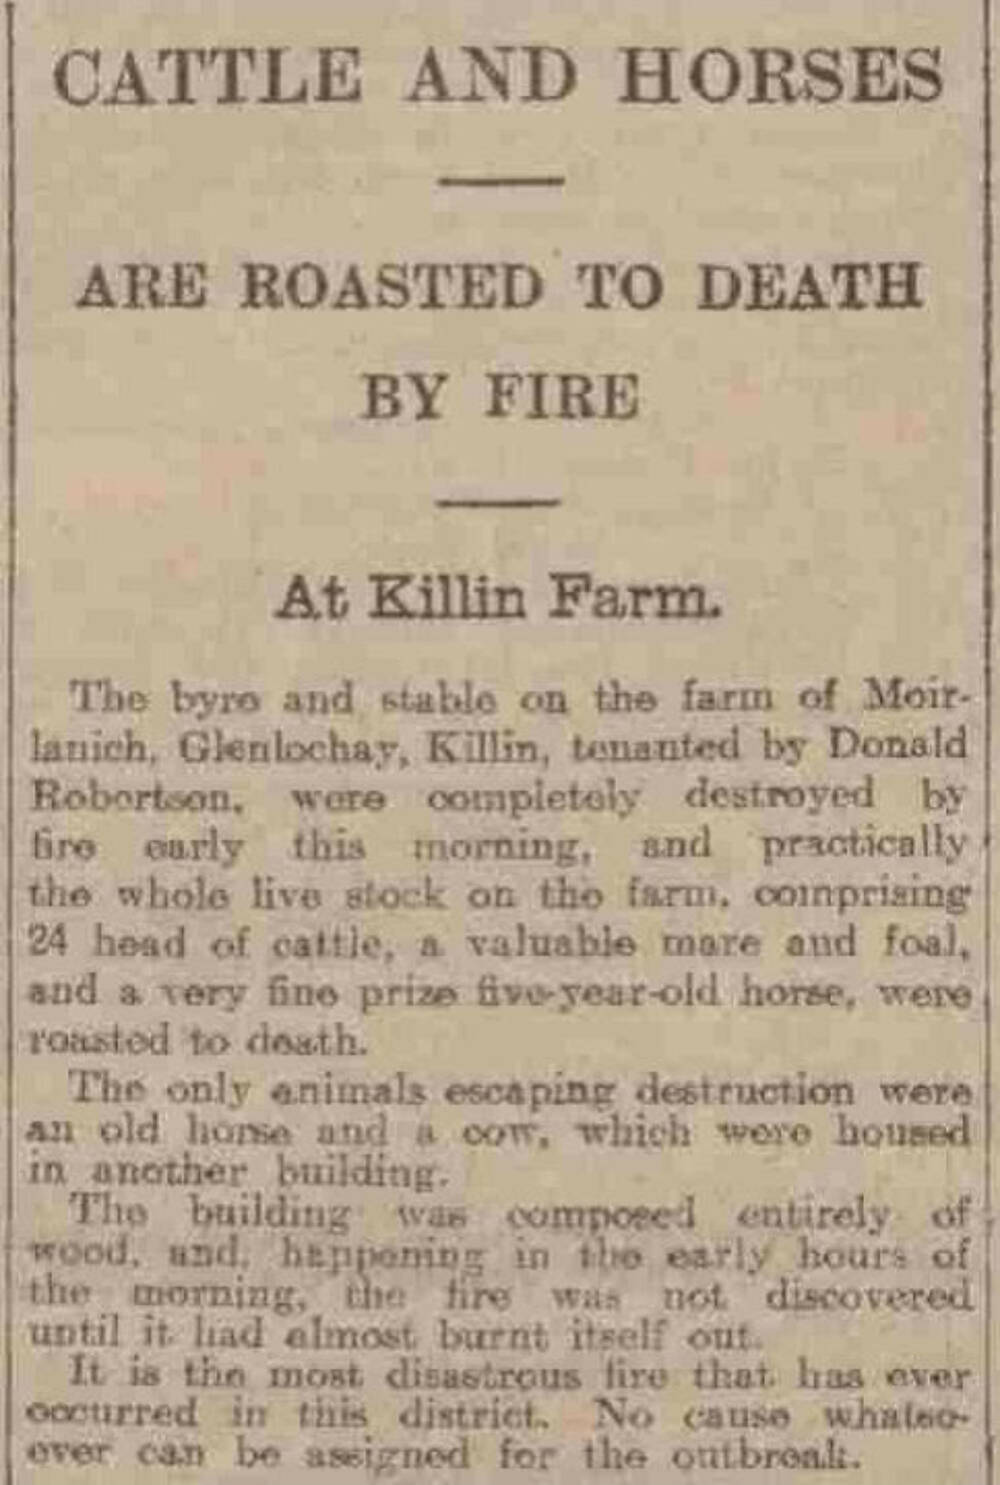 A report from the Evening Telegraph and Post, 18 May 1910. It describes the fire in the byre and stable at Moirlanich when almost all of the animals were 'roasted to death'.